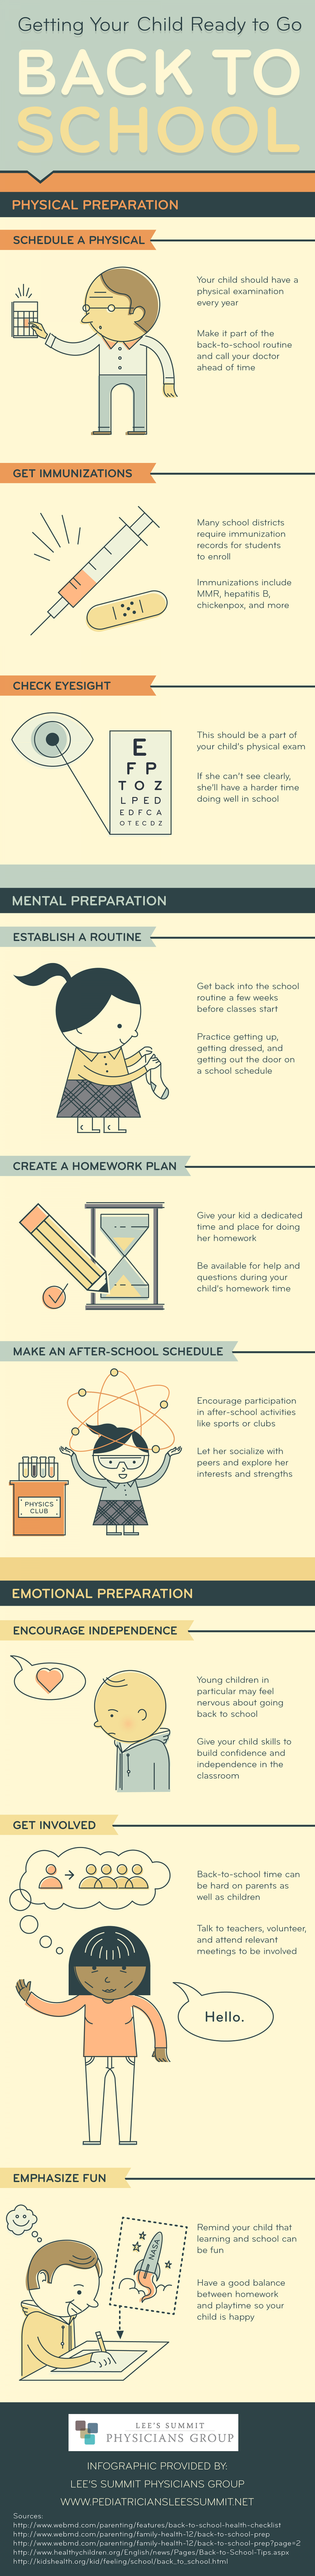 Getting Your Child Ready to Go Back to School Infographic